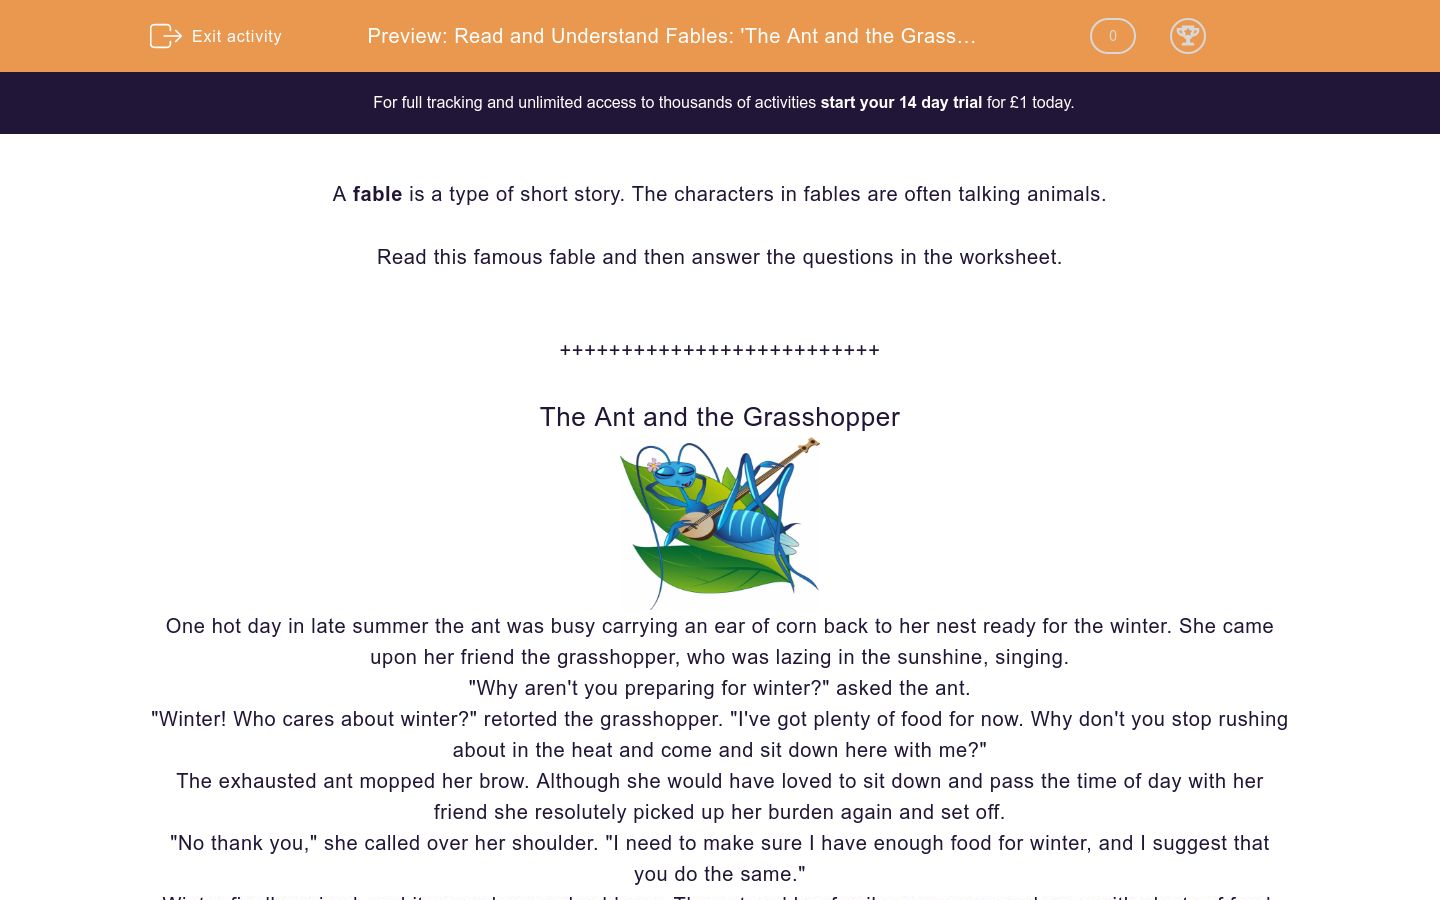 'Read and Understand Fables: 'The Ant and the Grasshopper'' worksheet